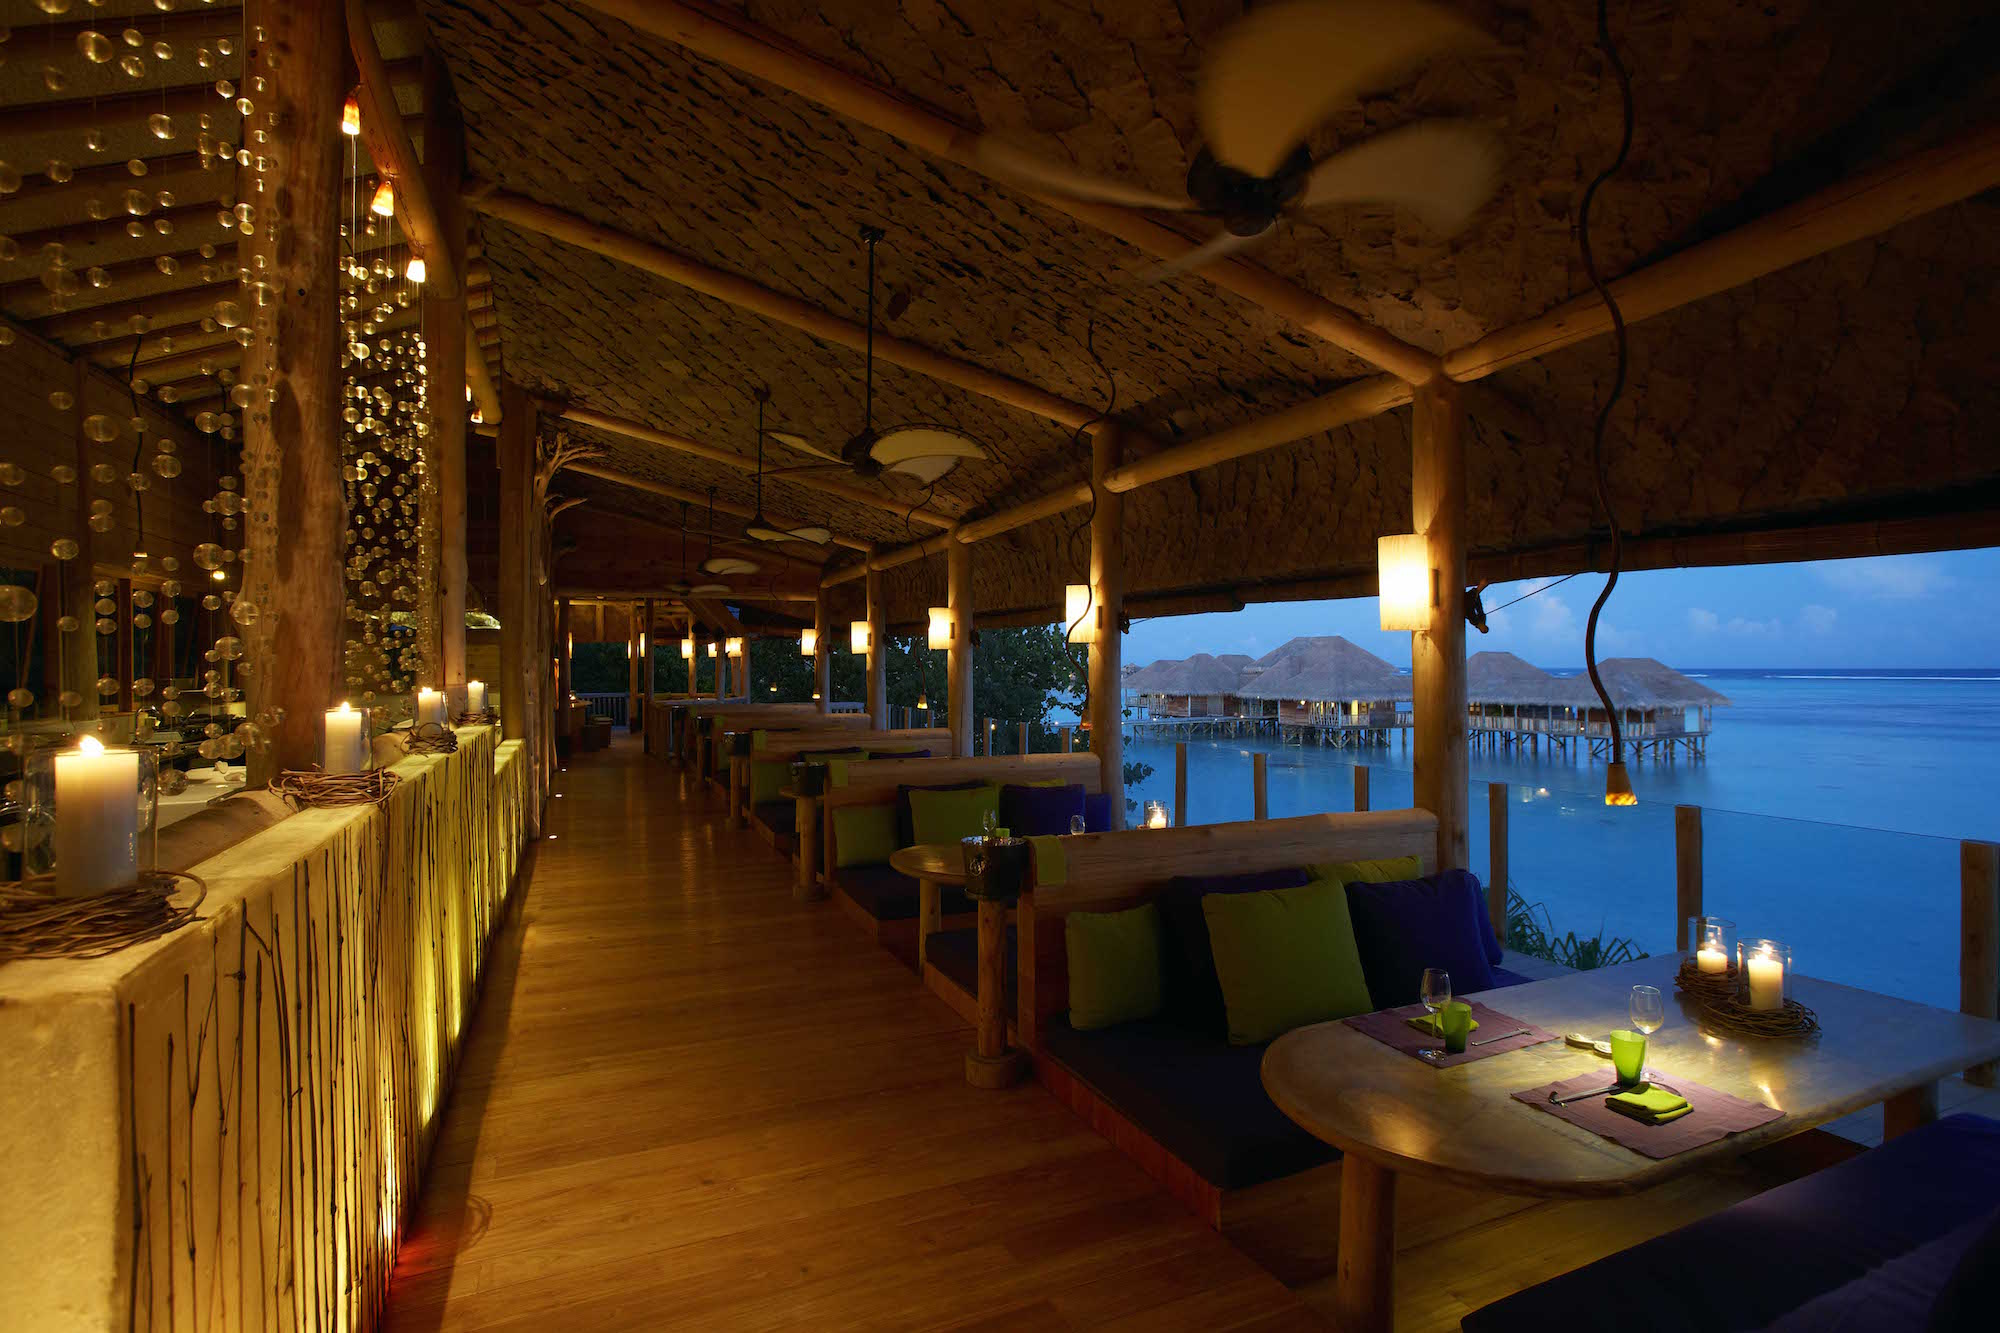 Gili Lankanfushi Resort Maldives - Japanese Restaurant